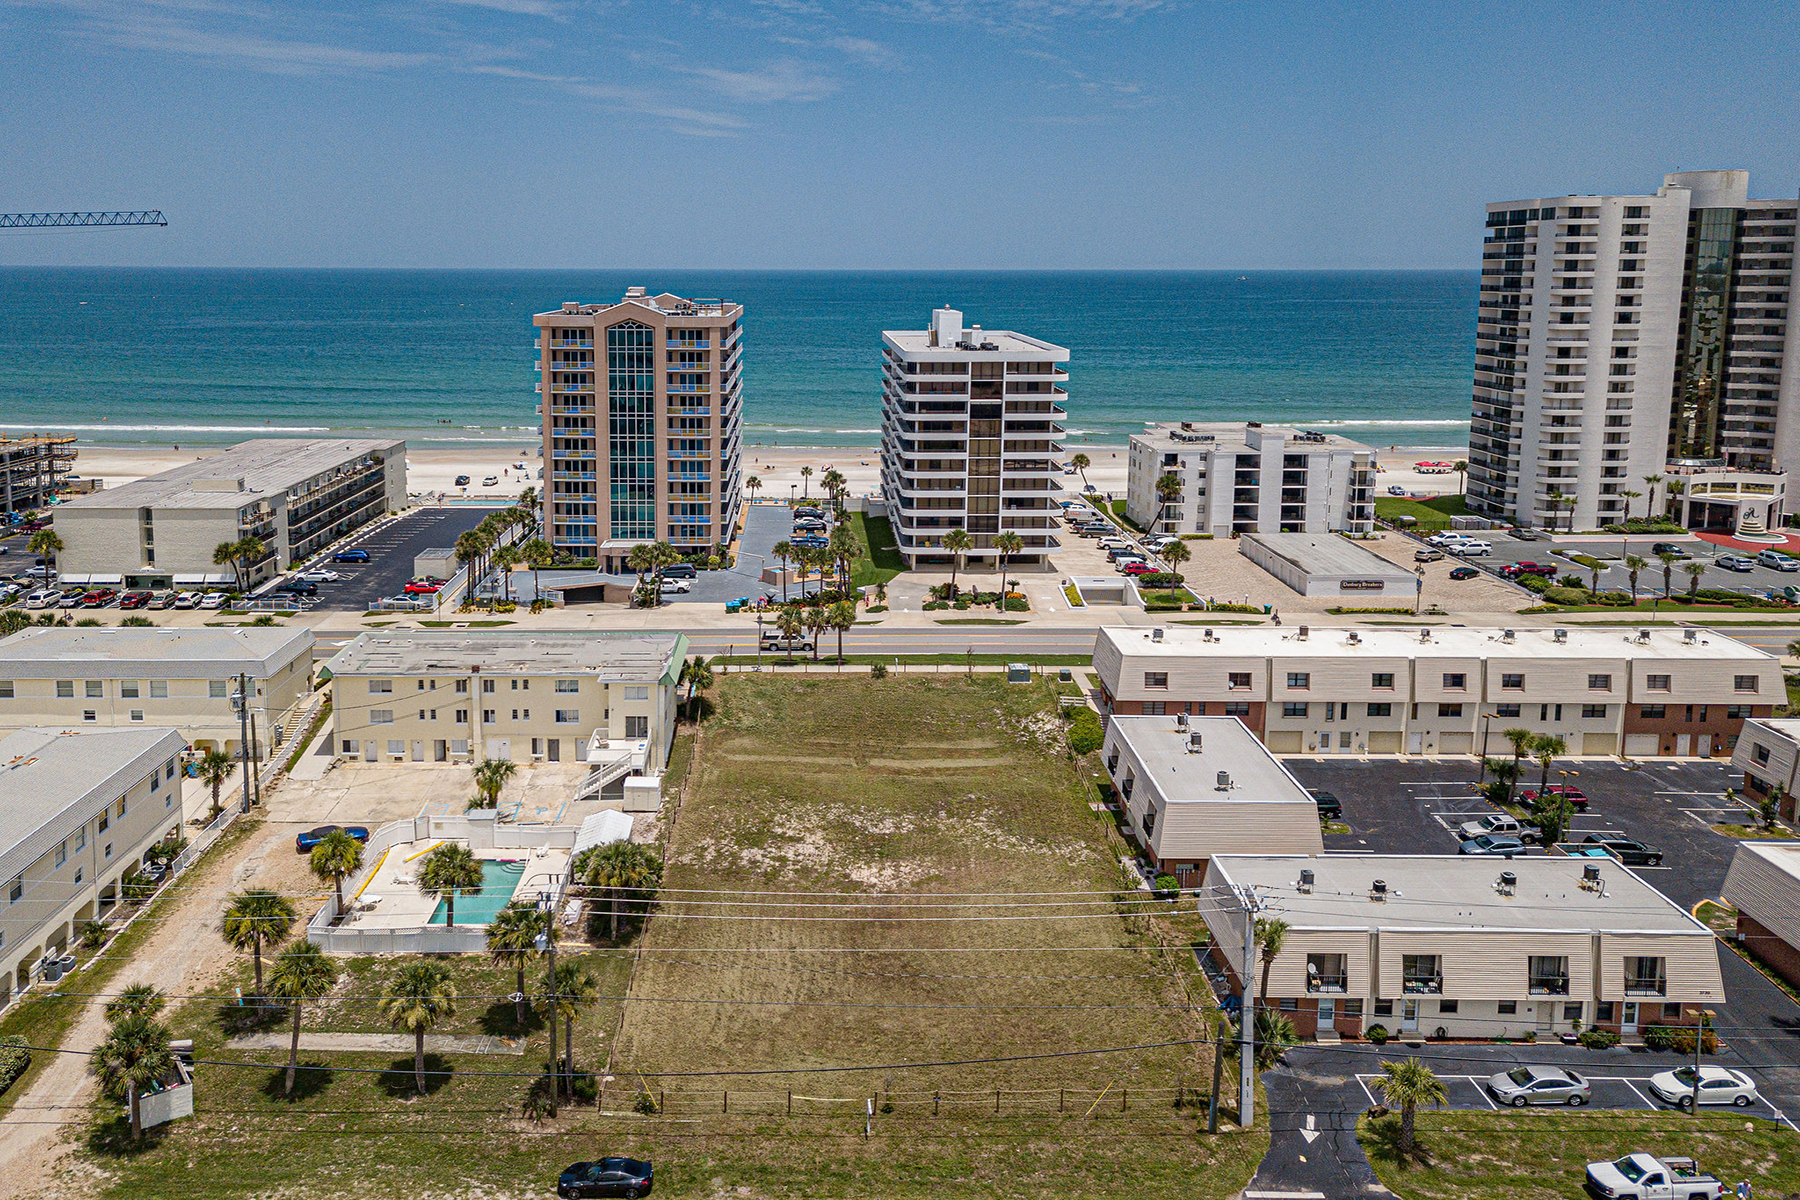 Land for Sale at Daytona Beach Shores 3742 S Atlantic Avenue, Daytona Beach Shores, Florida 32118 United States